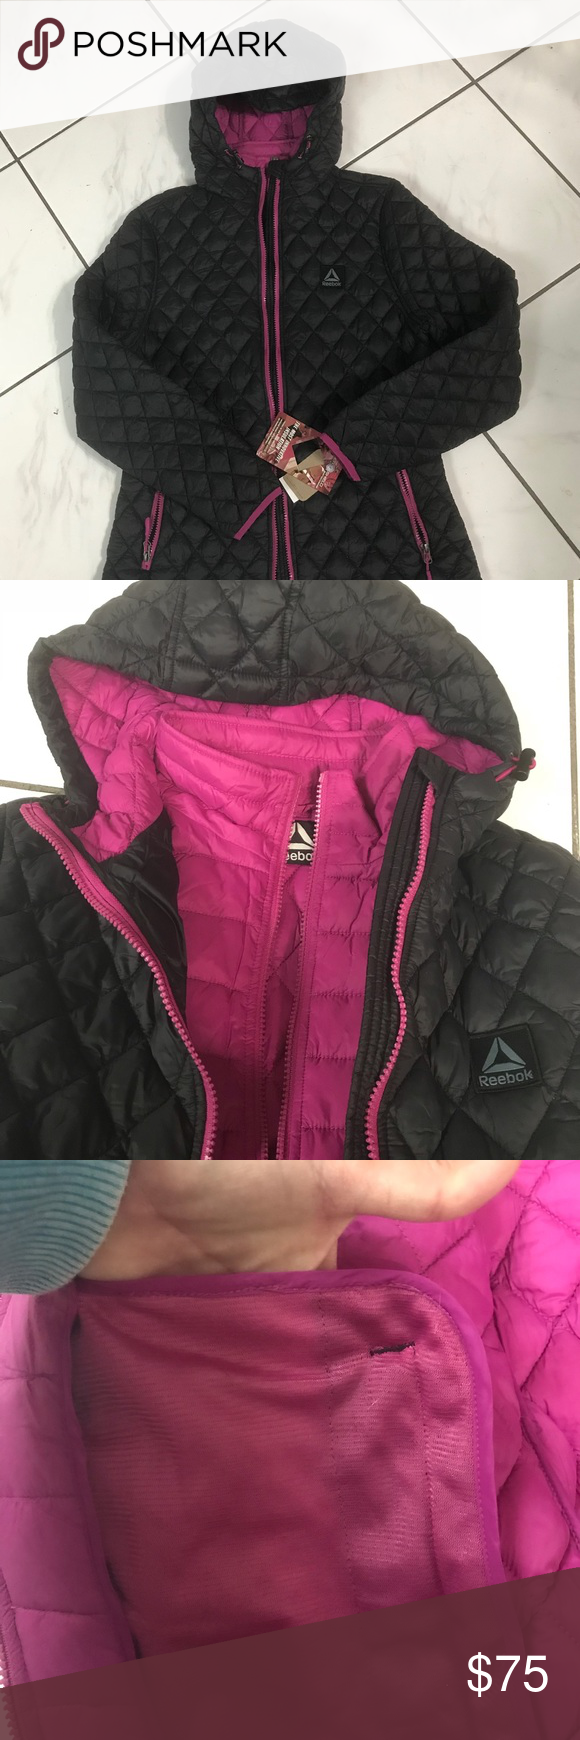 Just In Reebok Outerwear The Most Innovative Insulation Provides Same Warmth As Down Super Light Easy To Packaway Clothes Design Fashion Fashion Trends [ 1740 x 580 Pixel ]